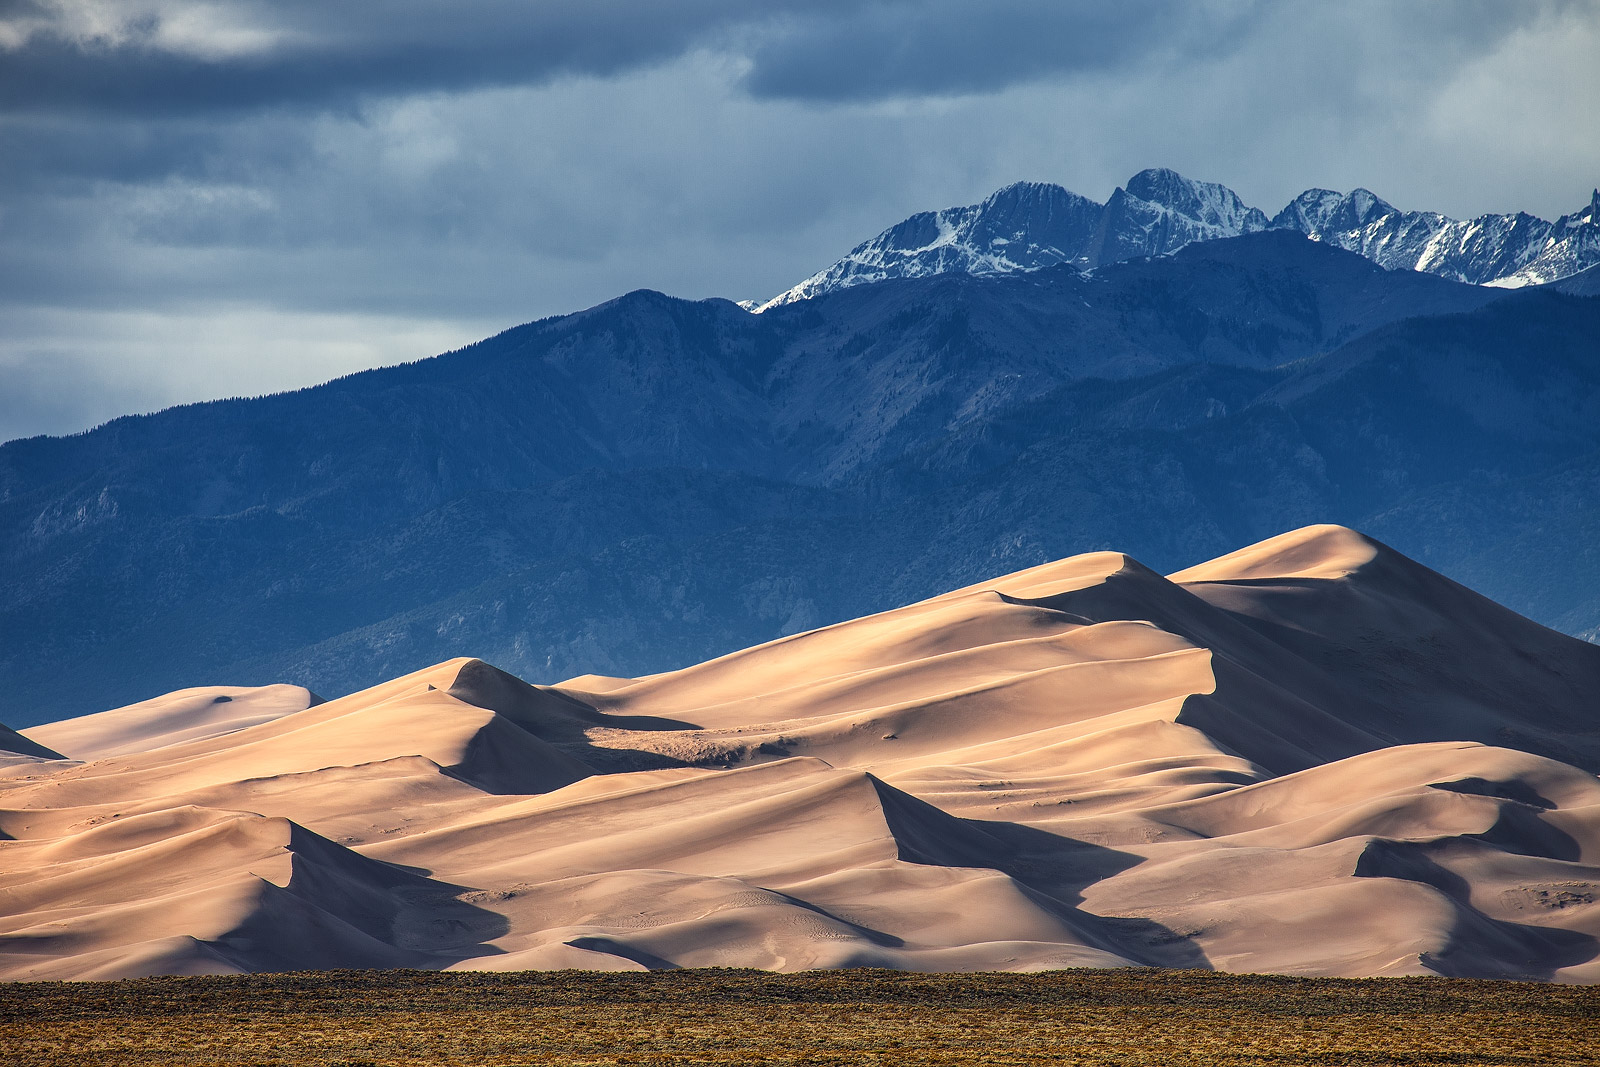 Star dune with the sangre de cristo mountains in the background